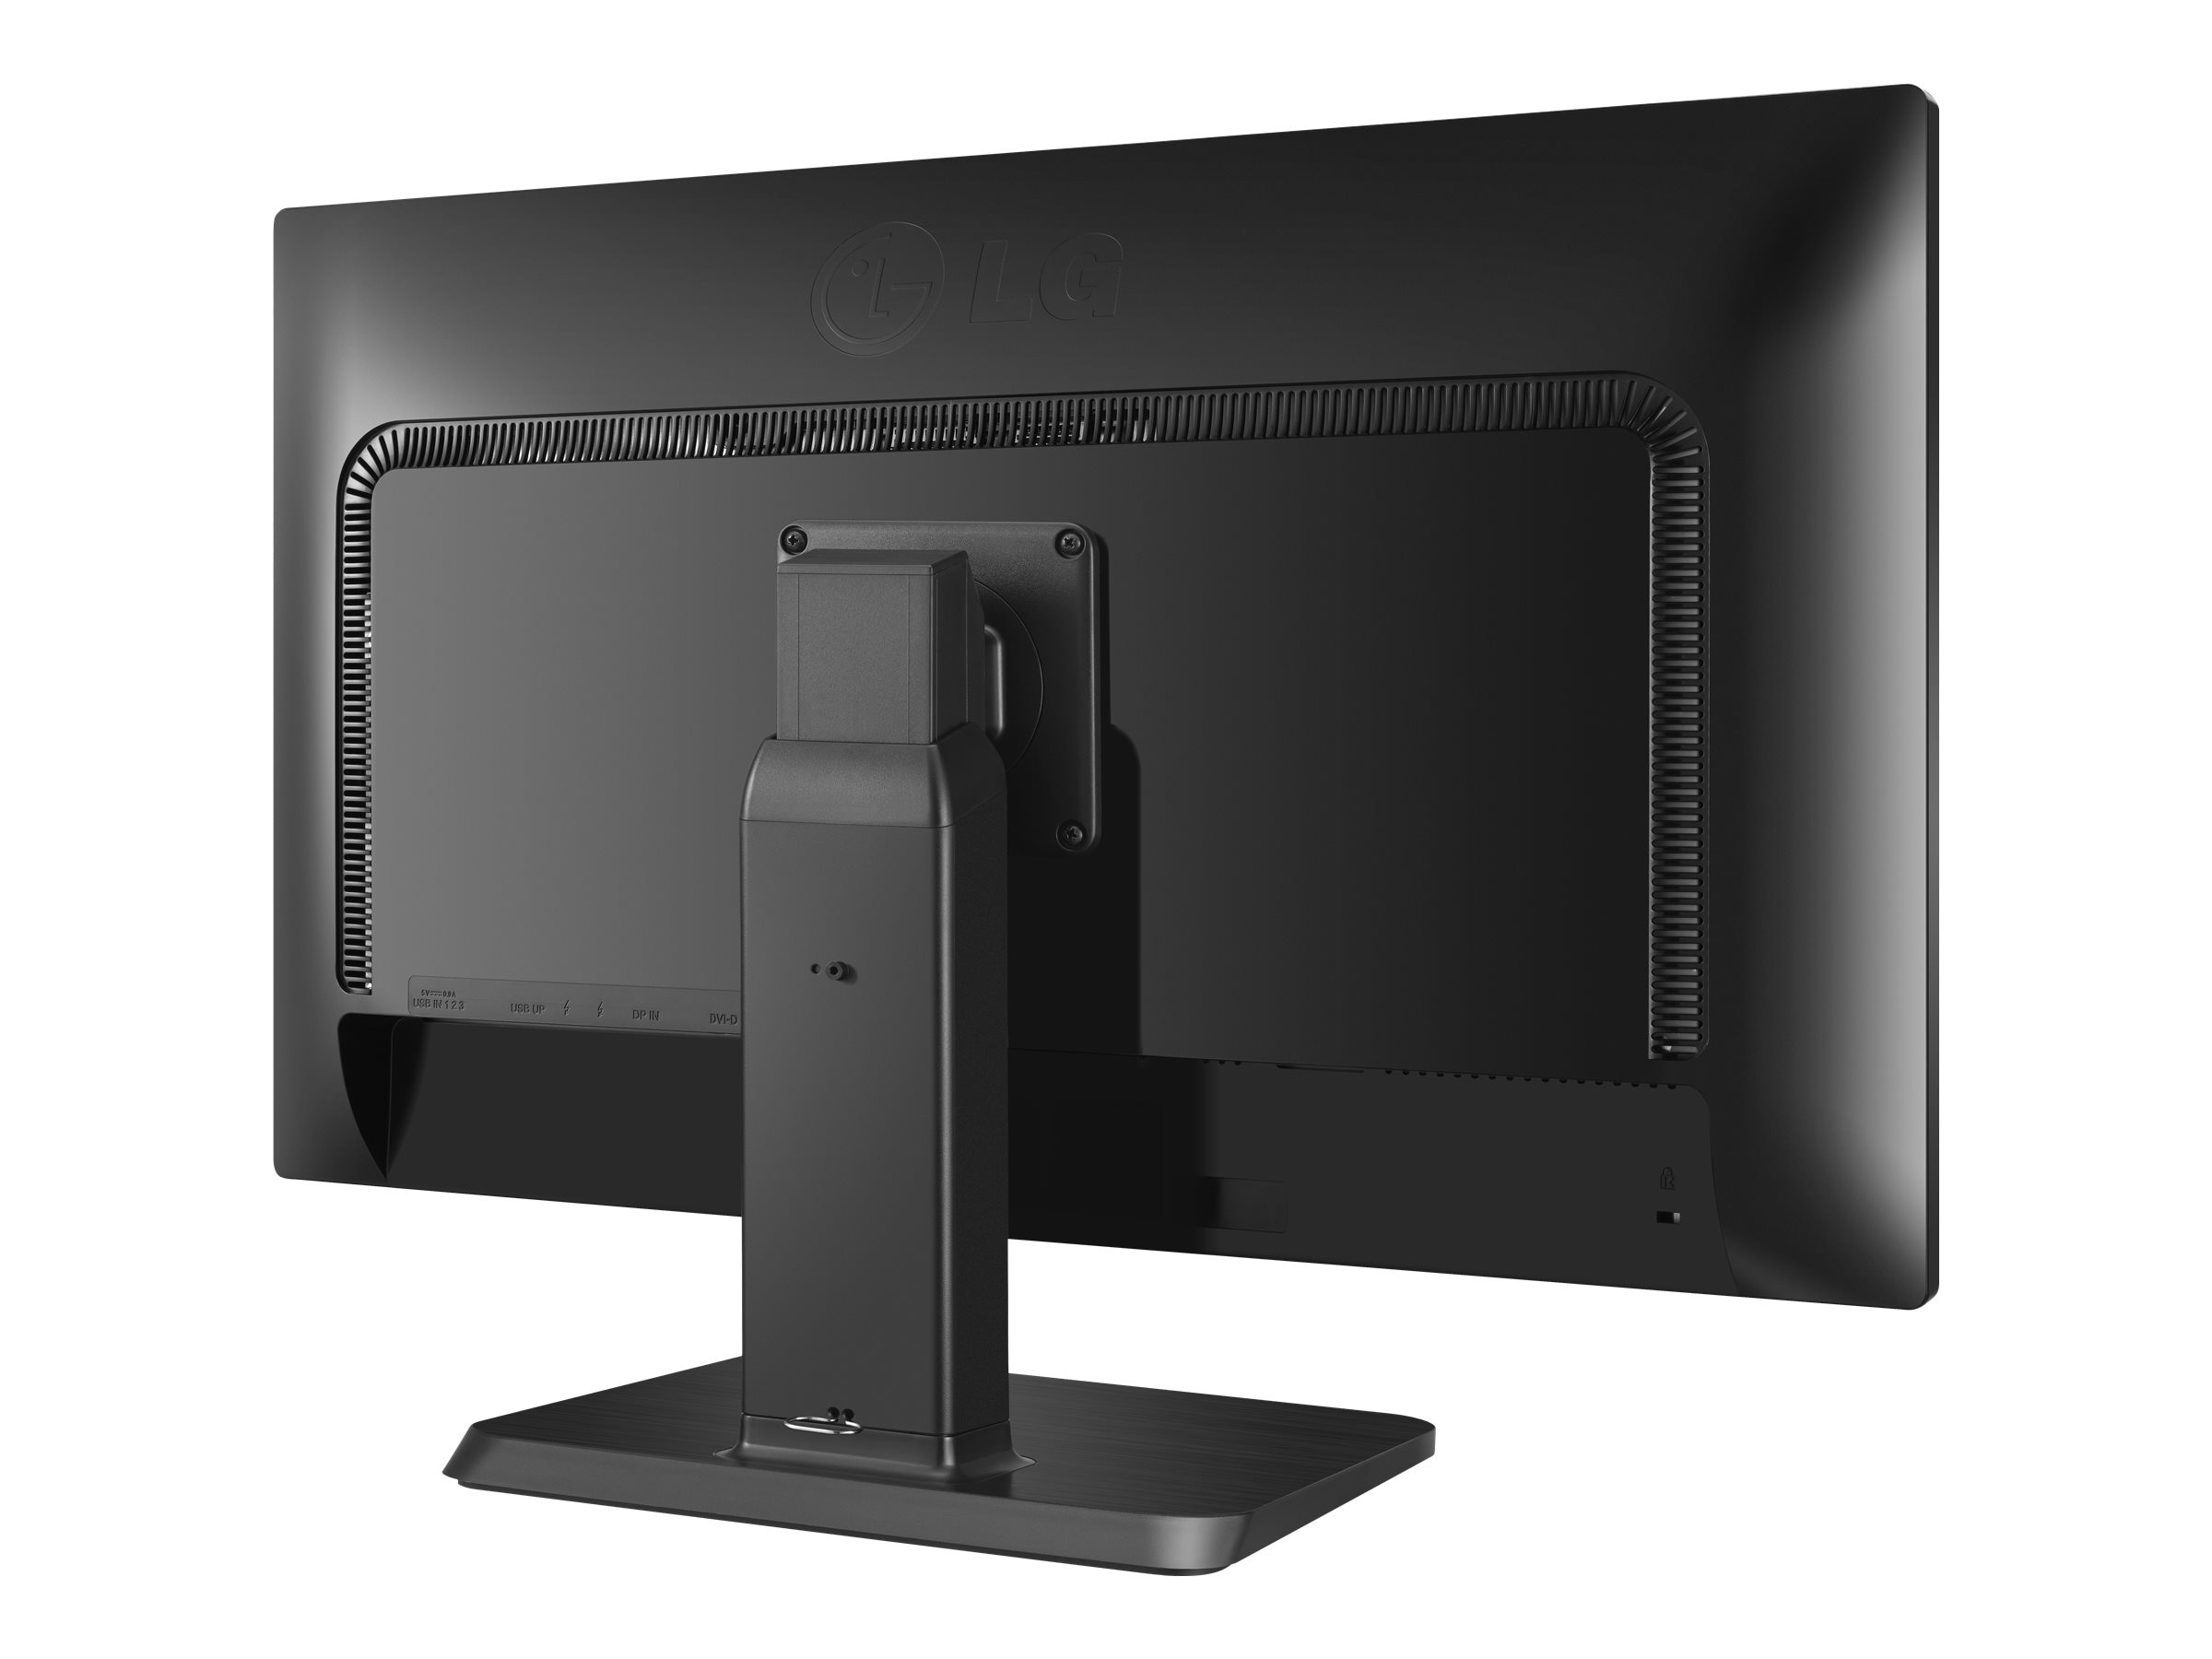 LG 27 MB85R-B LED-LCD HD Monitor, Black, 27MB85R-B